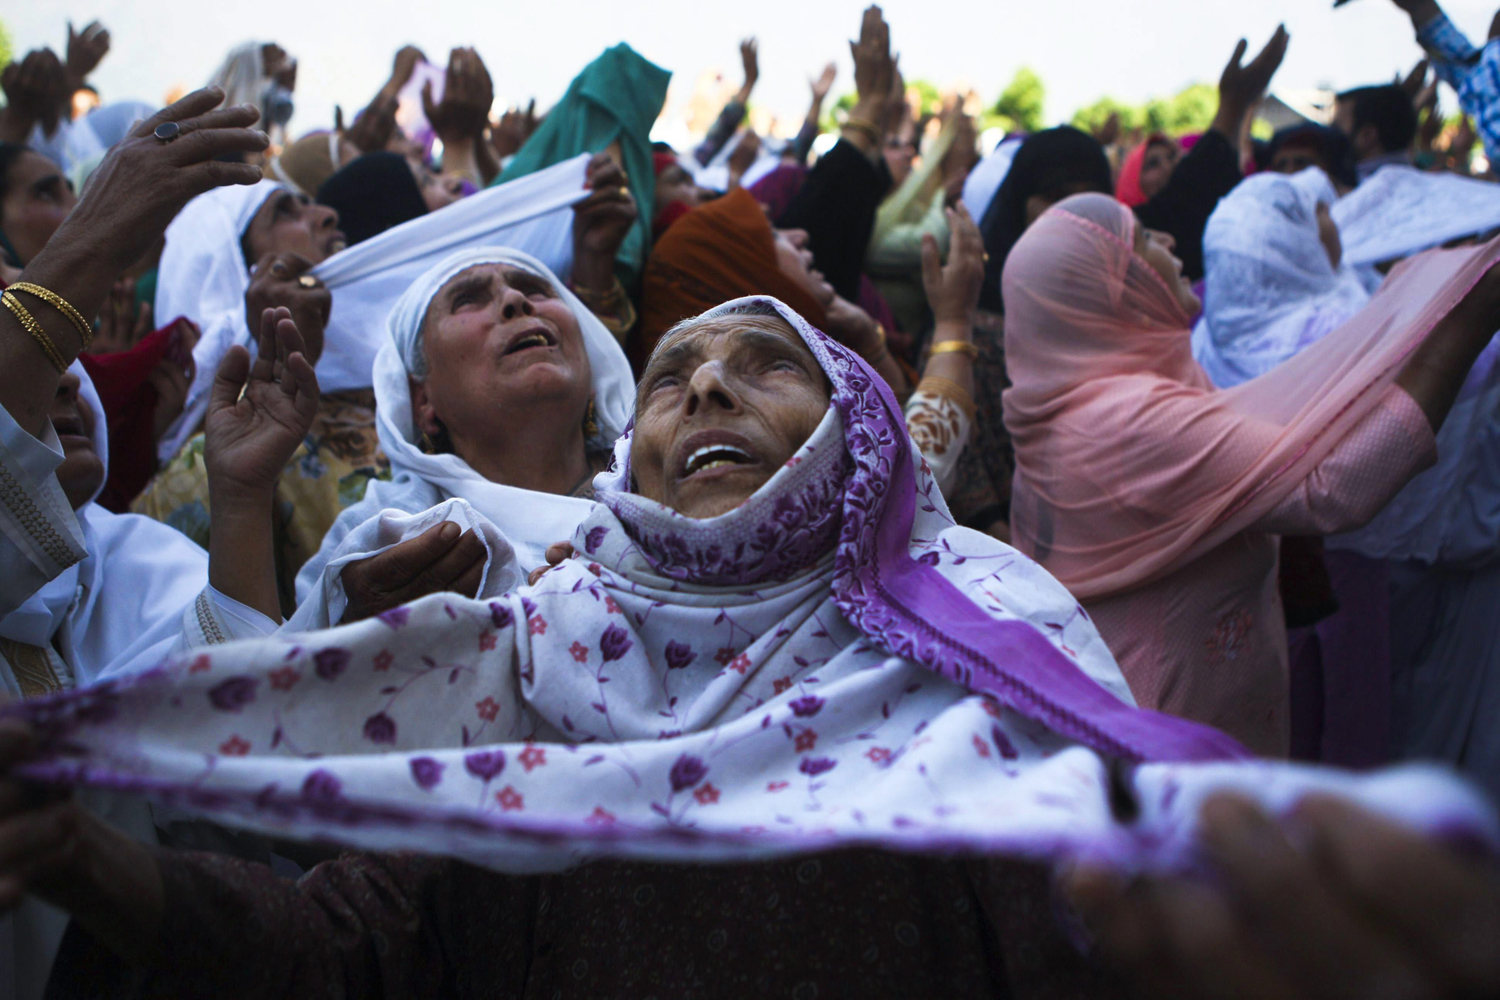 June 7, 2013. Kashmiri Muslims pray as a head priest (not in picture) displays a holy relic believed to be the hair from the beard of the Prophet Mohammed on occasion of the Mehraj-u-Alam festival, at the Hazratbal Shrine in Srinagar.